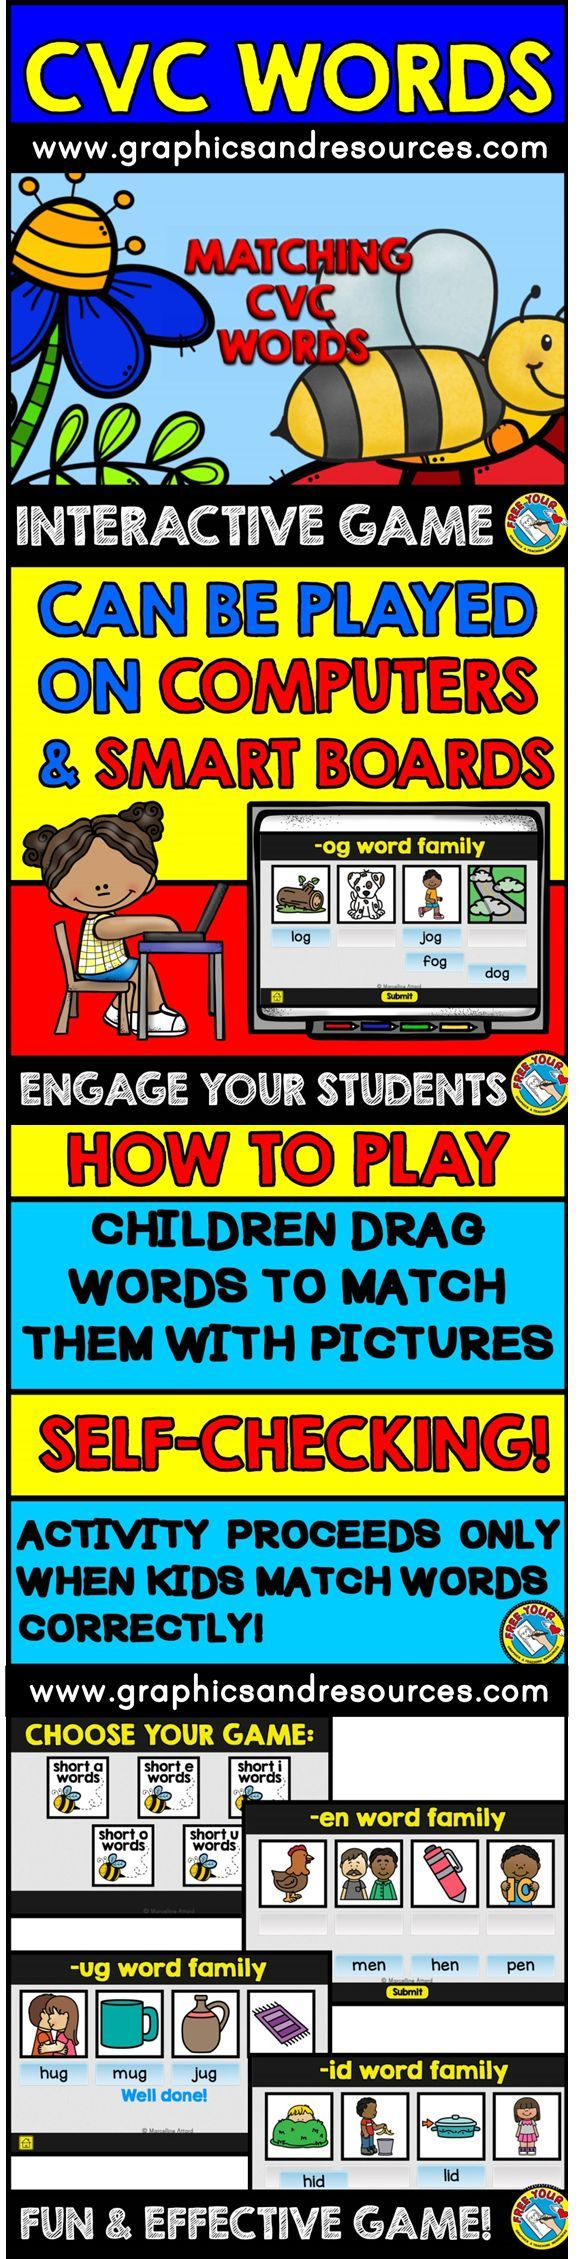 33192 best We All Teach Language! images on Pinterest | Learning ...